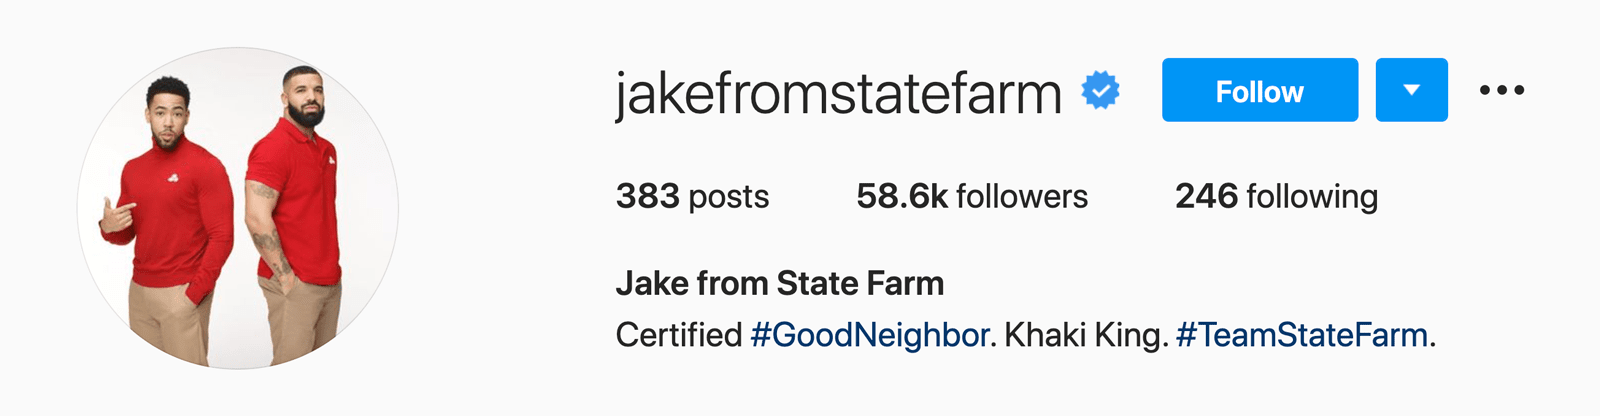 Jake from State Farm's Instagram profile header